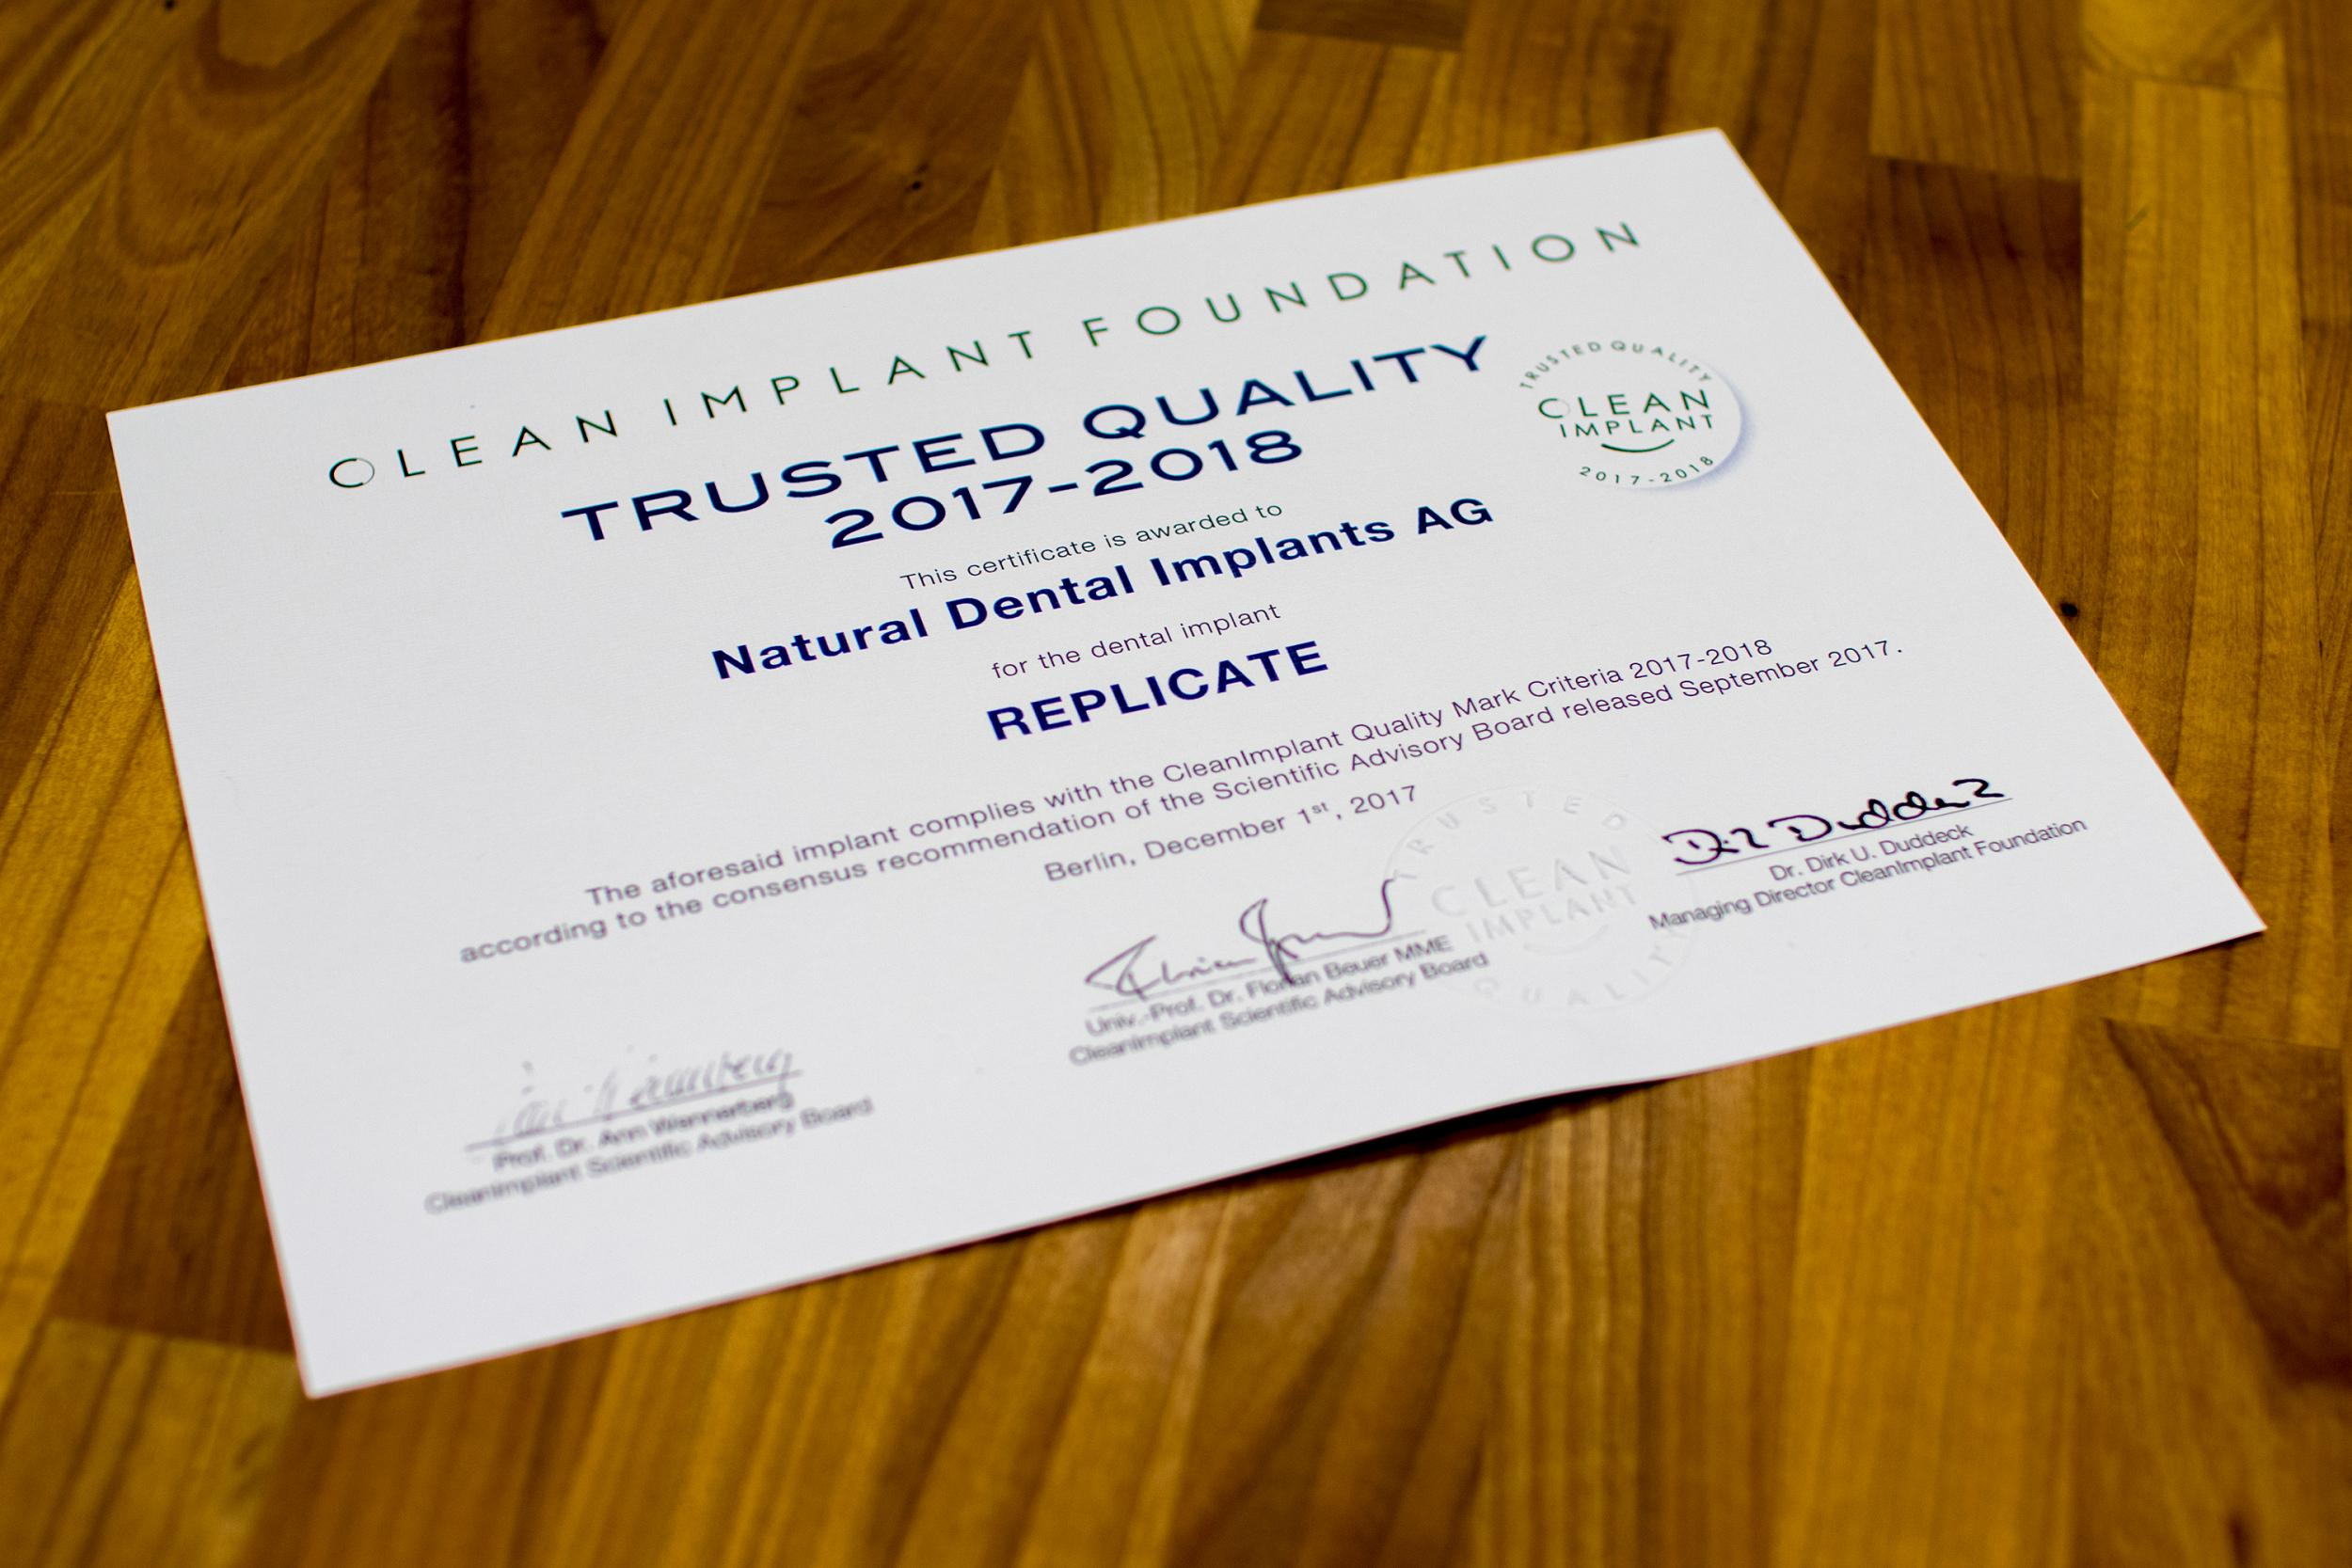 Trusted Quality - Certificate for NDI AG